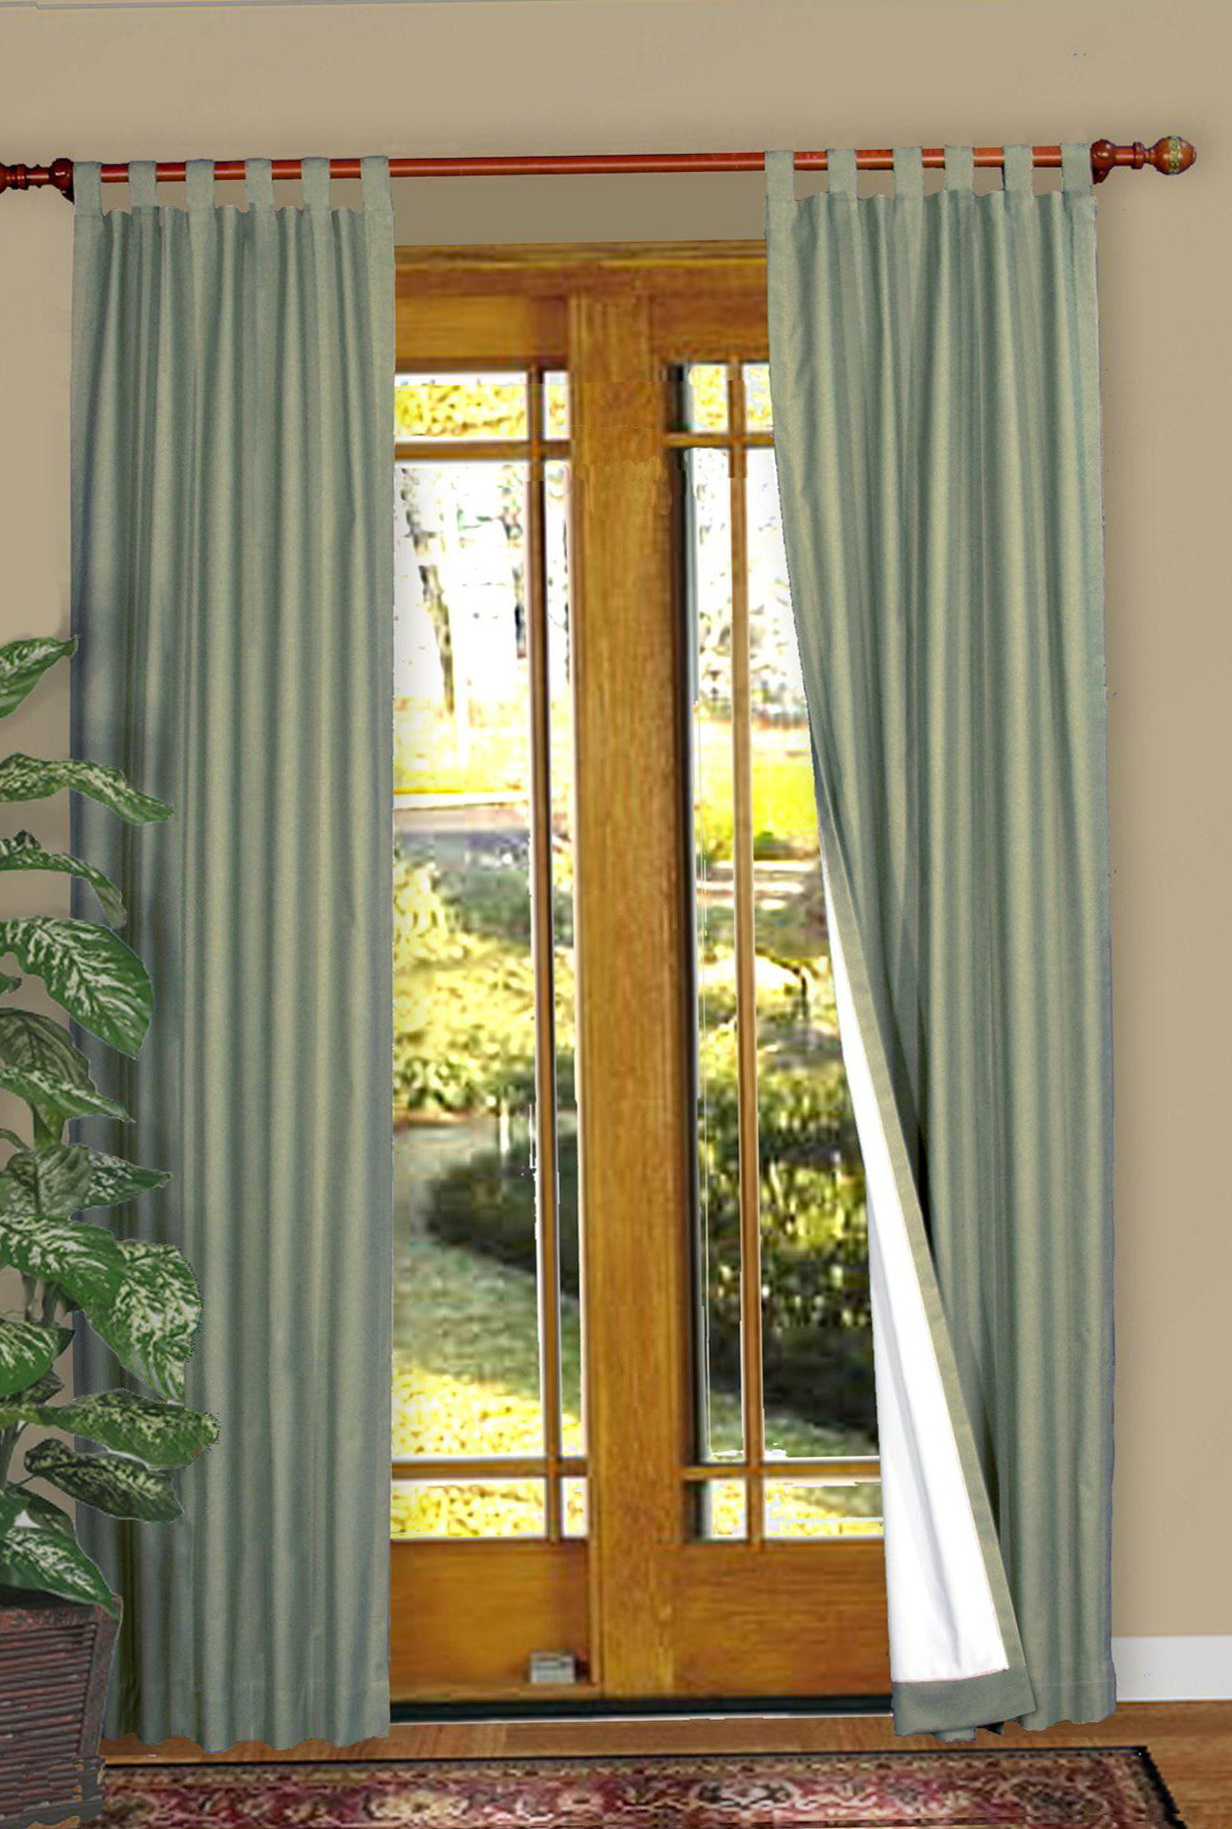 Buy curtains online usa home design ideas for Where to buy curtains online